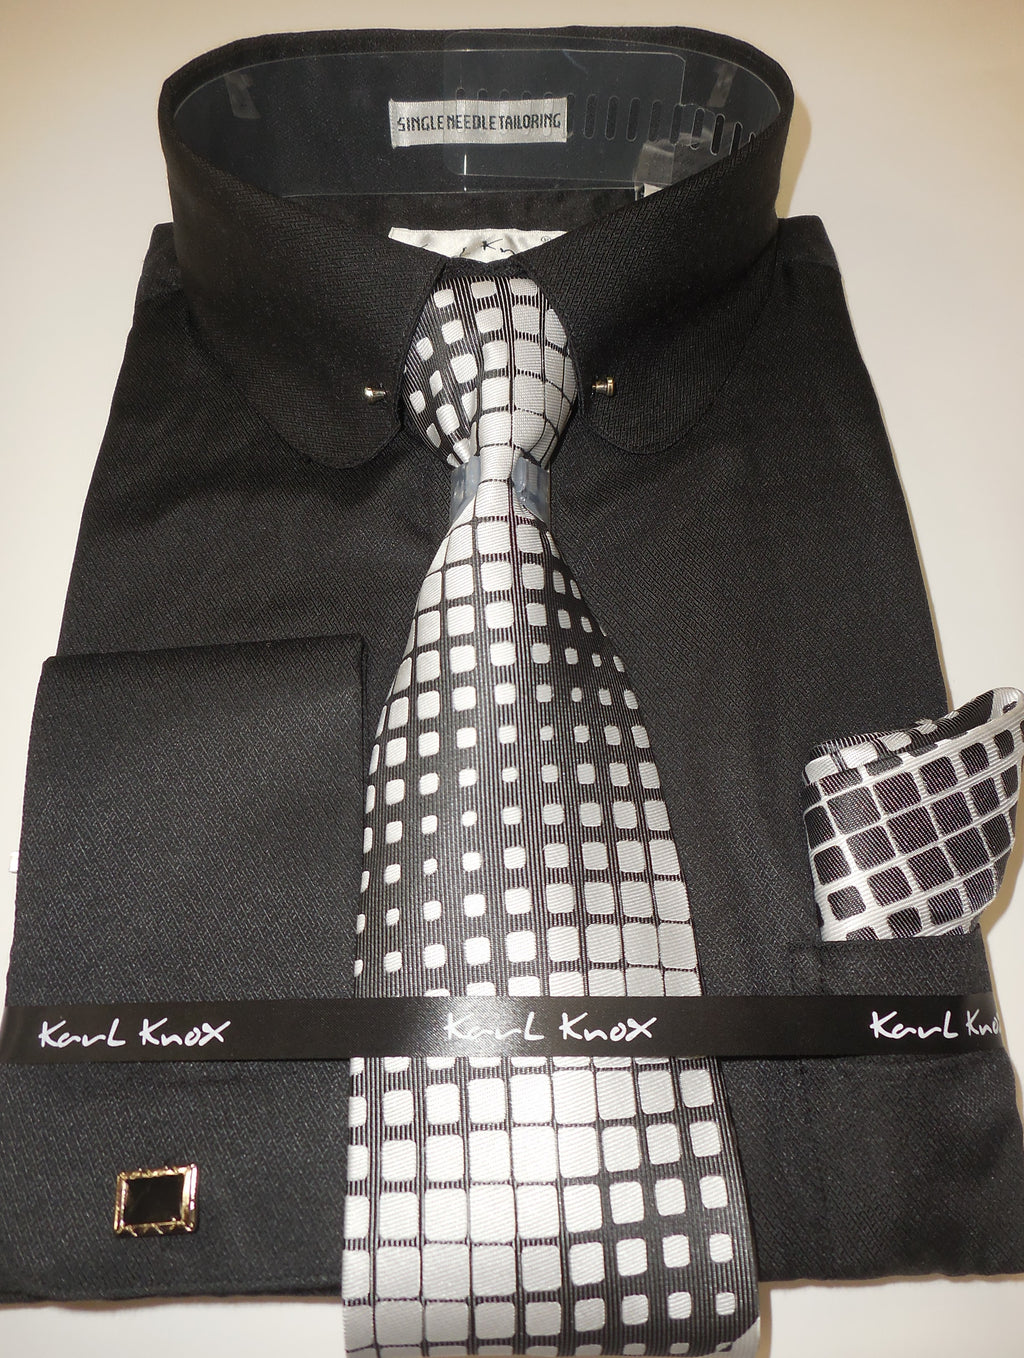 Mens All Black Round Collar + Collar Bar French Cuff Dress Shirt Karl Knox 4404